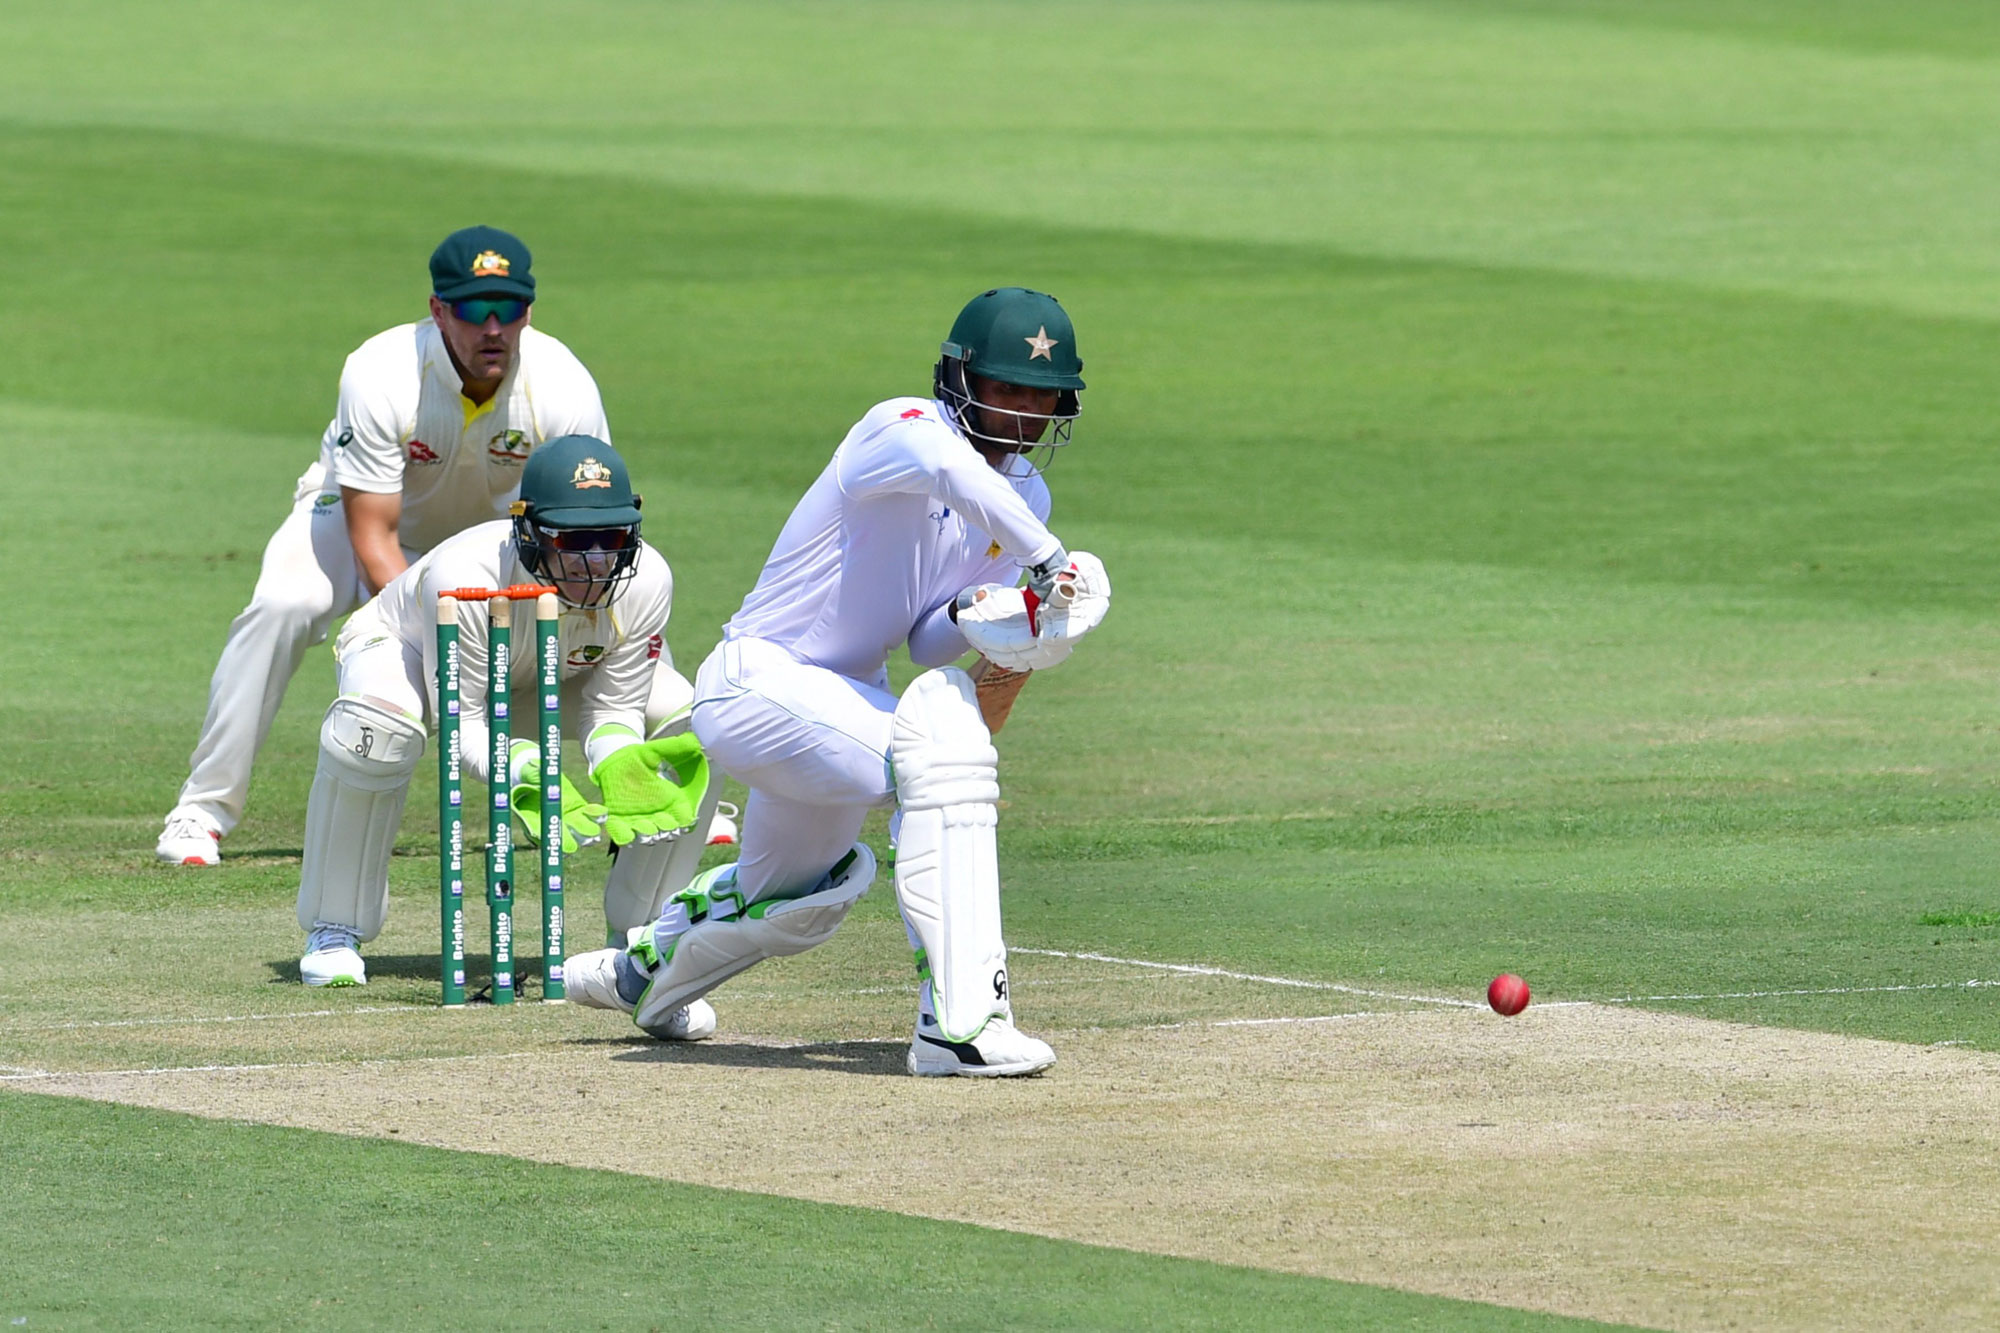 Pakistan cricketer Fakhar Zaman plays a shot during day one of the second Test cricket match in the series between Australia and Pakistan at the Abu Dhabi Cricket Stadium in Abu Dhabi on October 16, 2018. (Photo by GIUSEPPE CACACE / AFP)